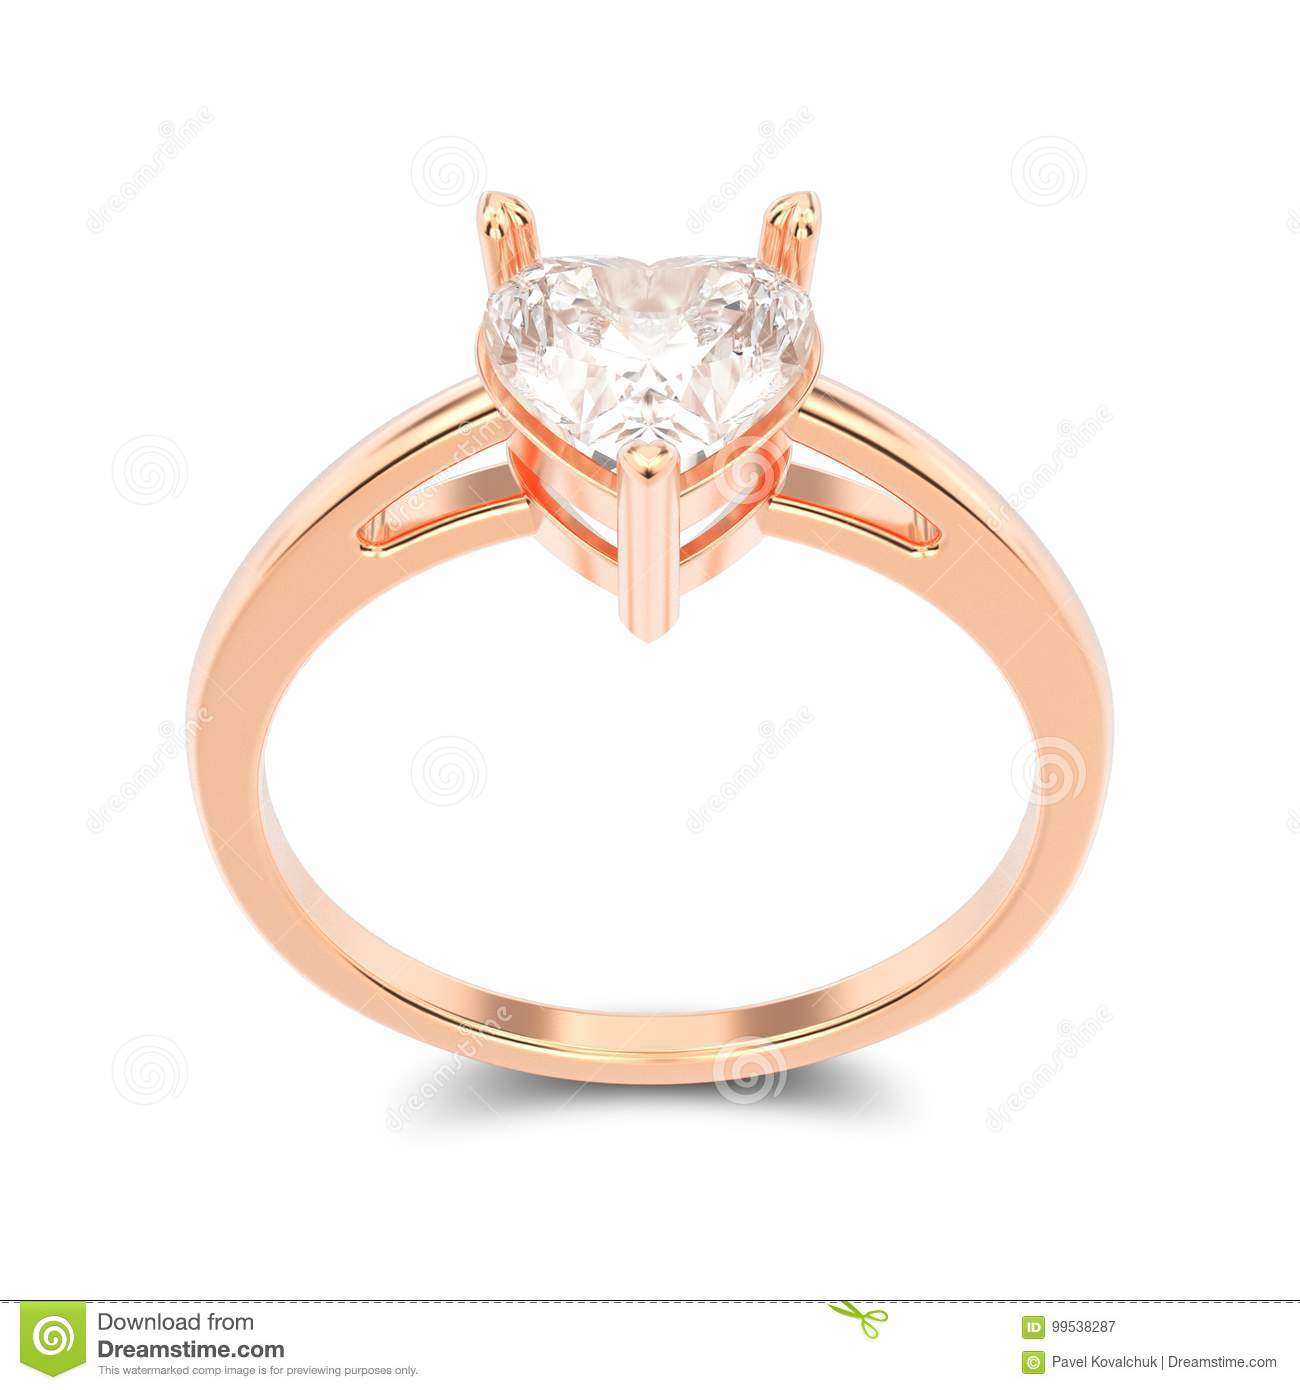 3D illustration isolated rose gold engagement ring with diamond